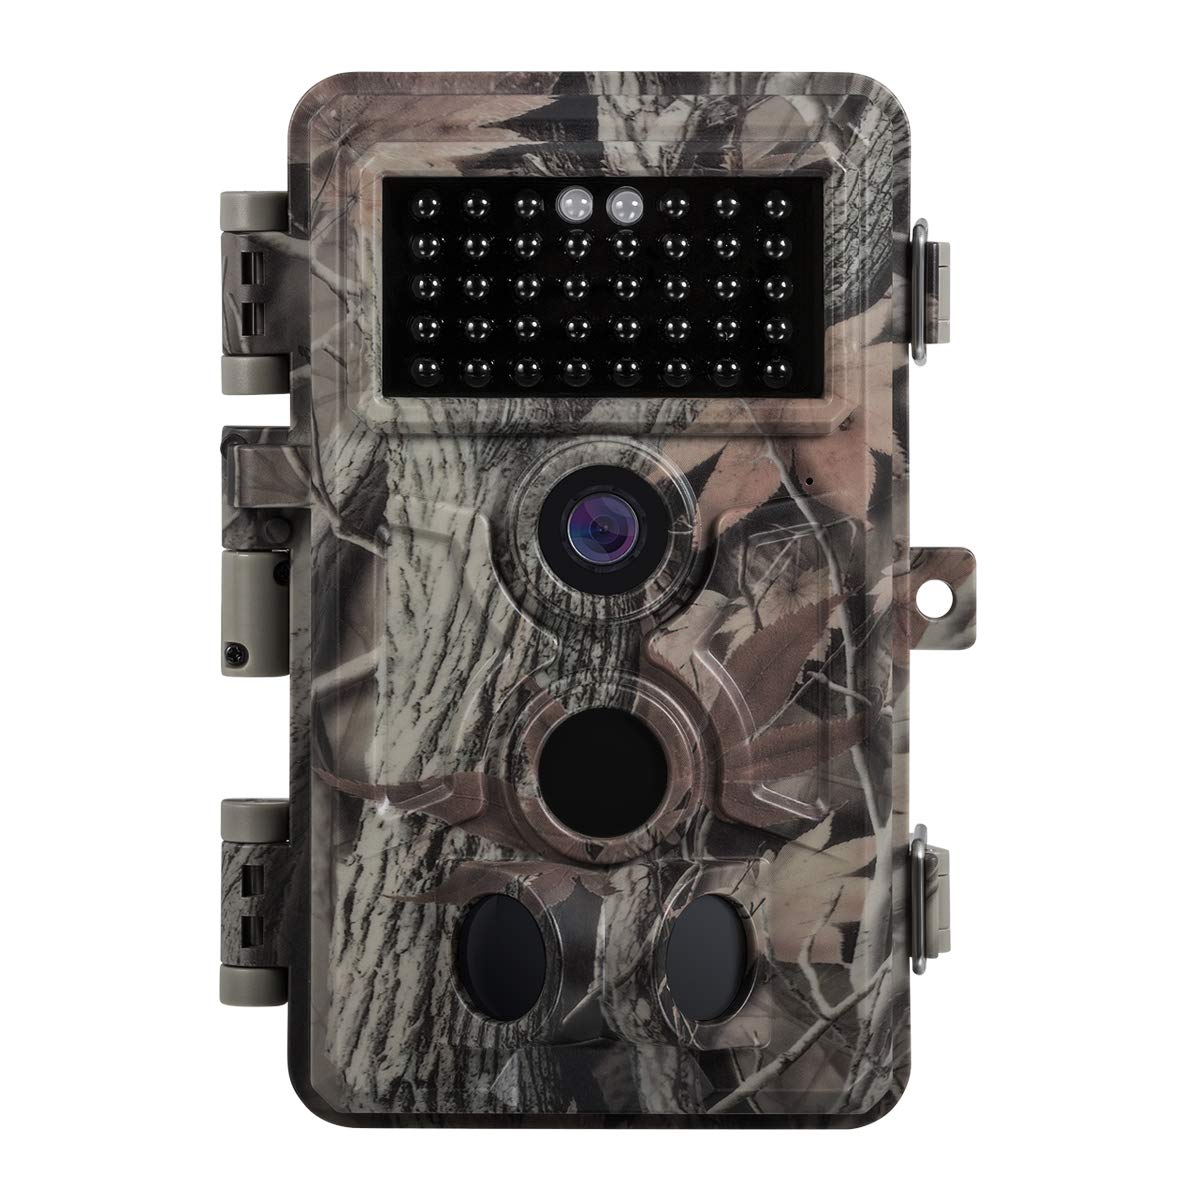 Zopu Trail Game Camera 20MP 1080P, No Glow Night Vision 65ft, 0.2s Motion Activated, Waterproof Wildlife Cam for Nature Field Deer Scouting & Hunting, Indoor & Outdoor Security by Zopu